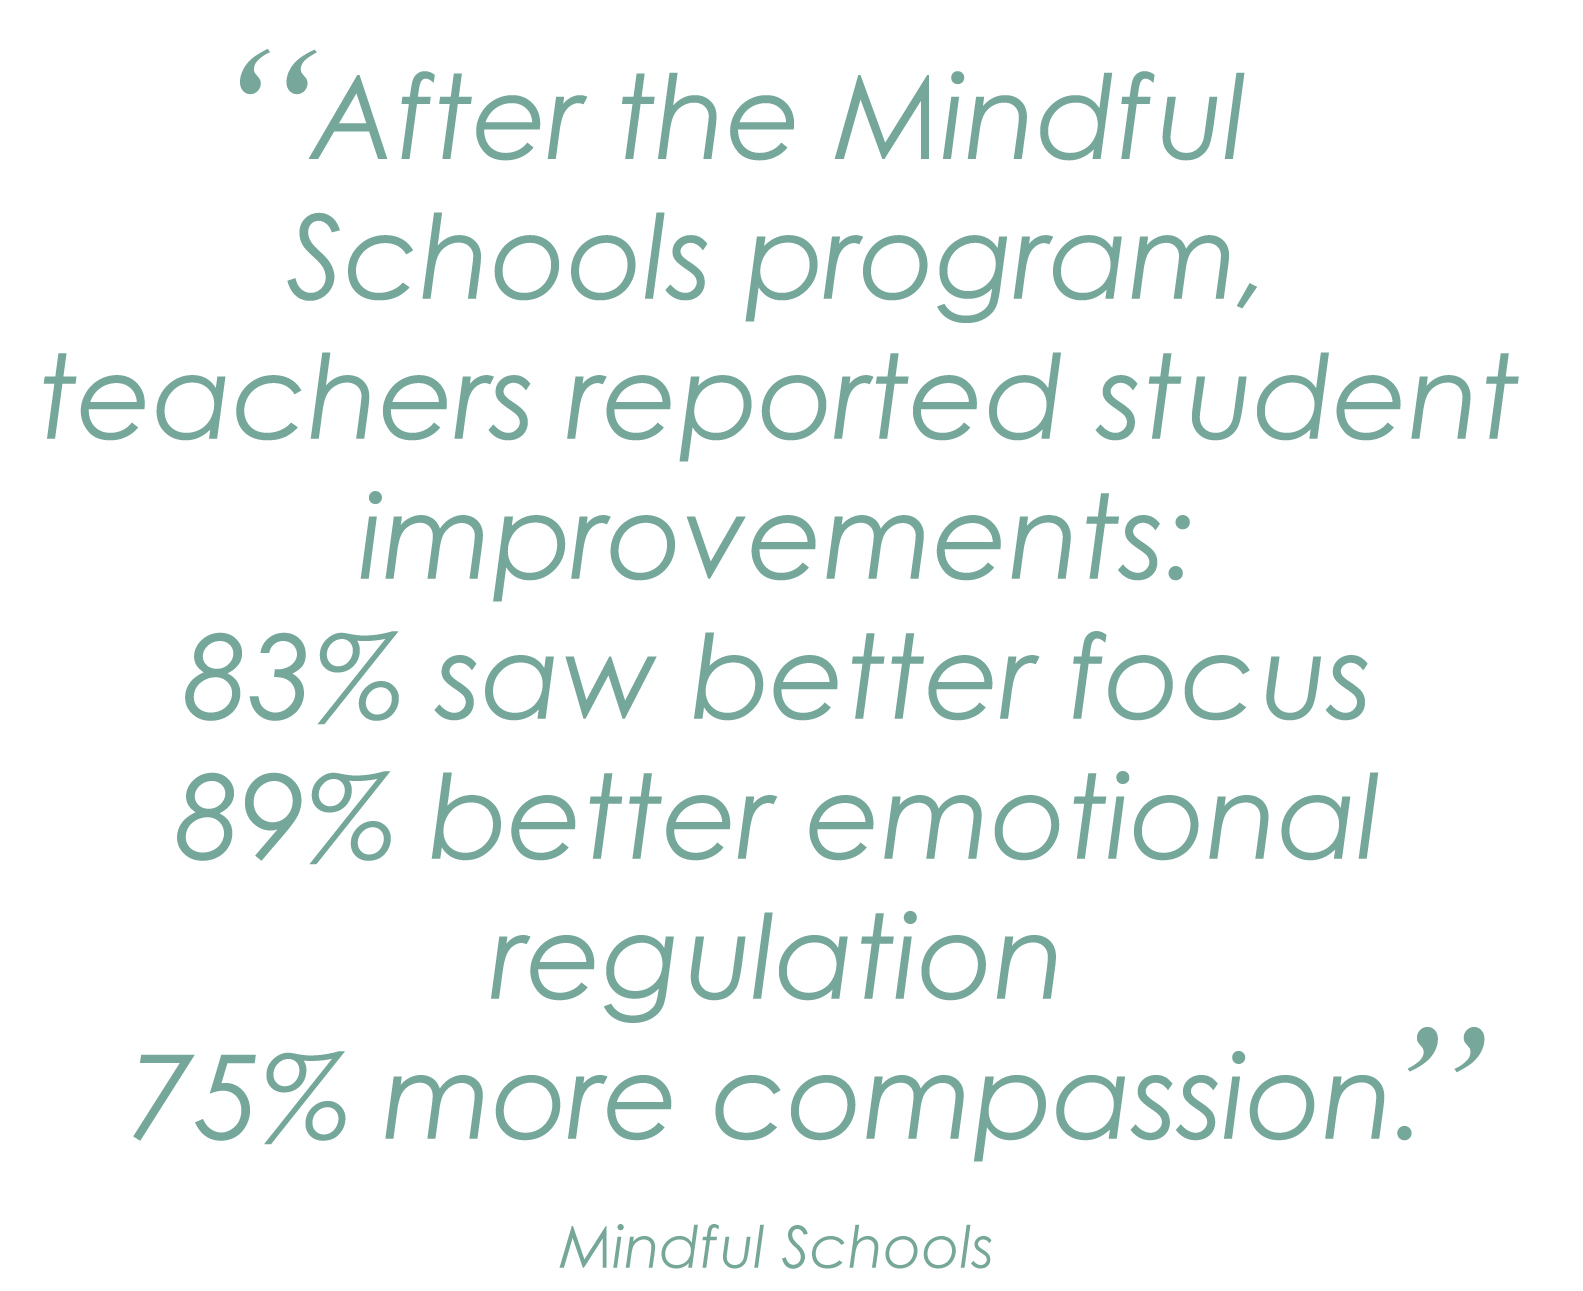 Mindful School Quote Final FINAL.jpg